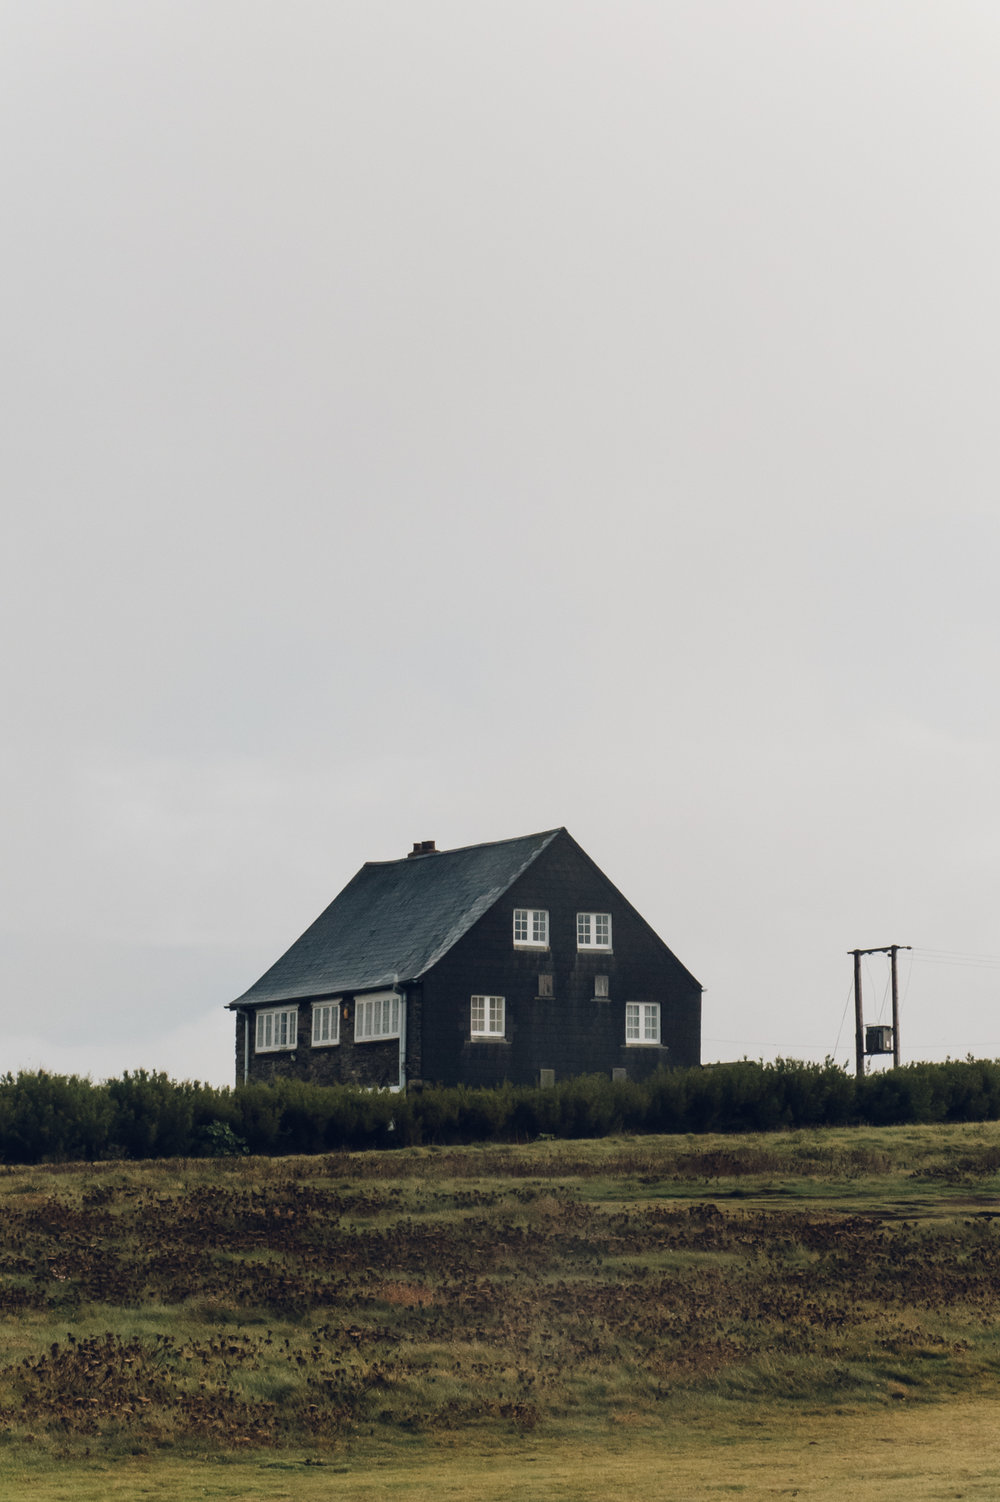 A Scandinavian-inspired black house by the coast.